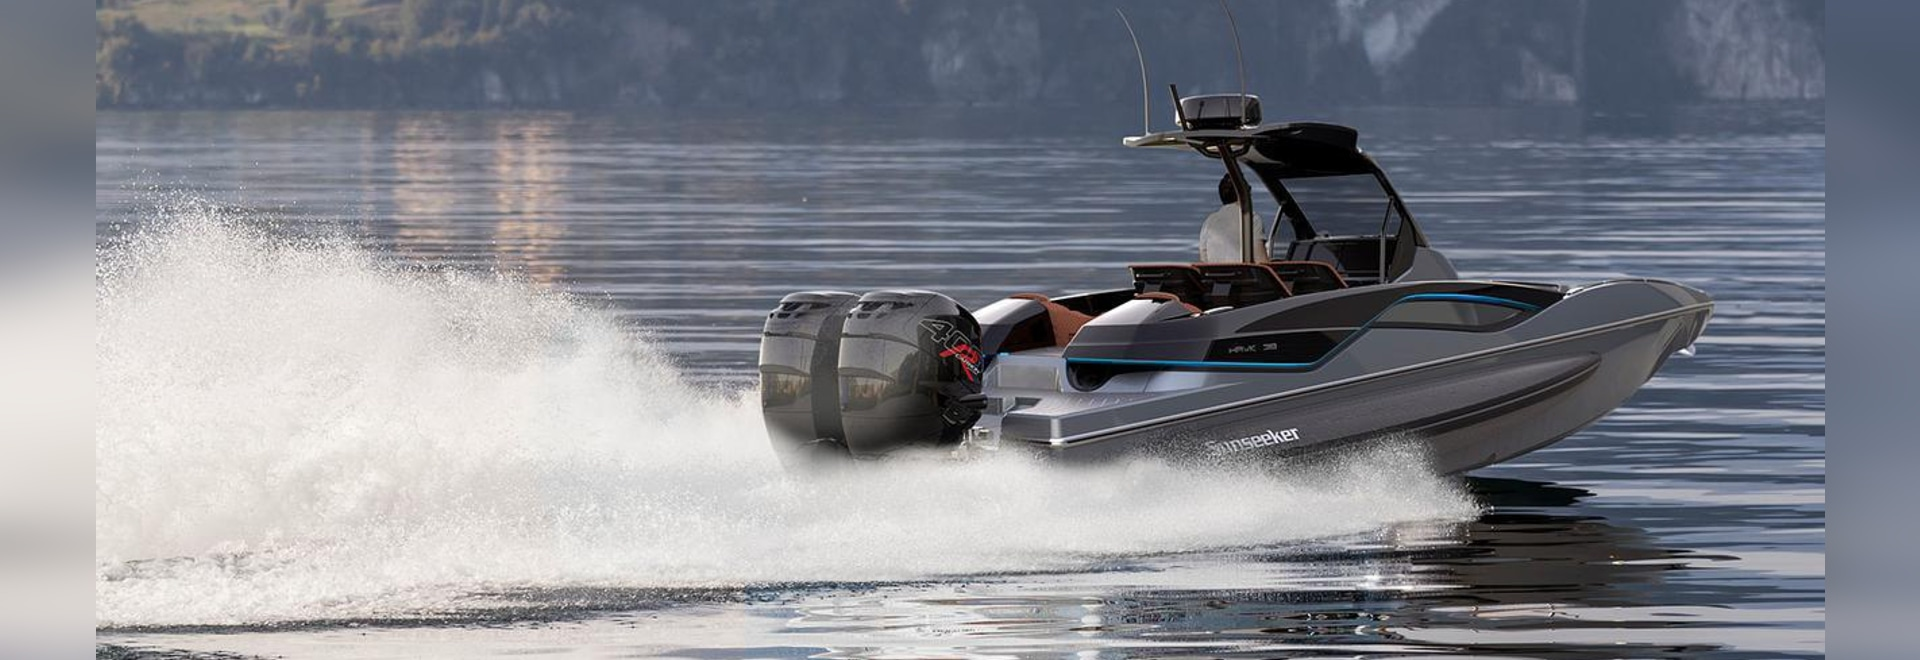 The 11.85 metre day boat has a top speed of 62 knots